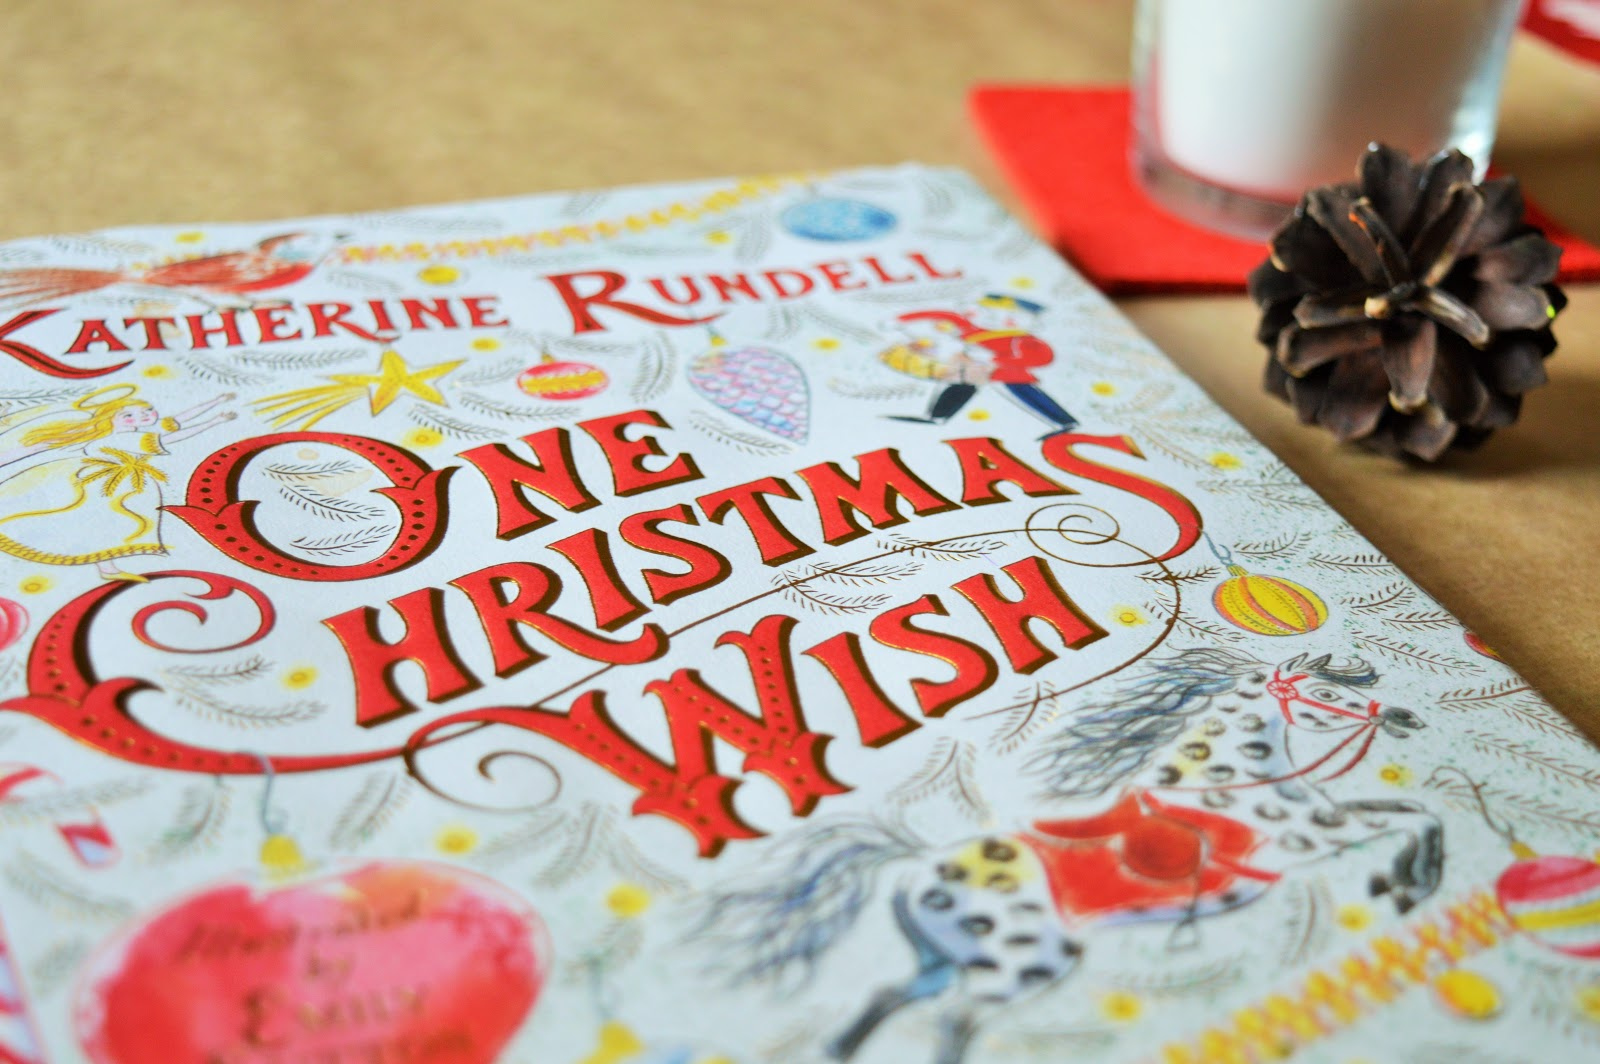 Book Review: One Christmas Wish by Katherine Rundell